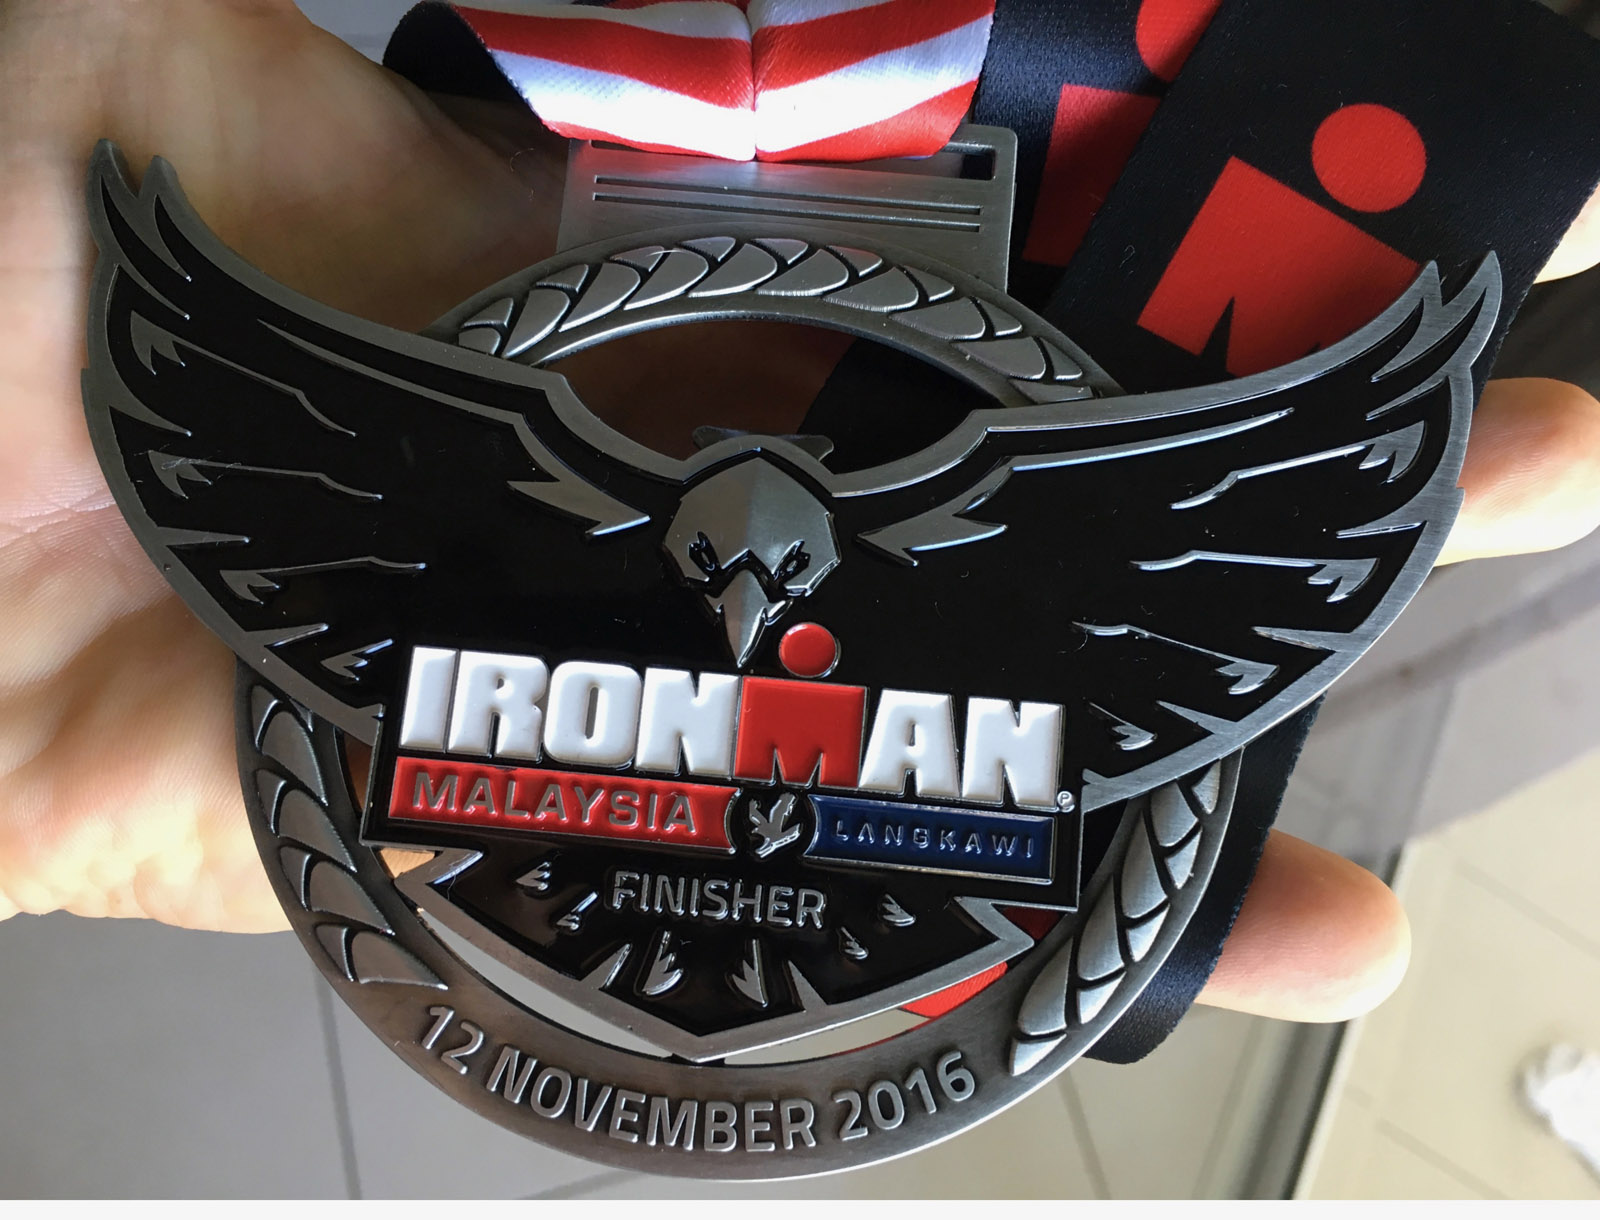 Finisher de l'Ironman de Langkawi